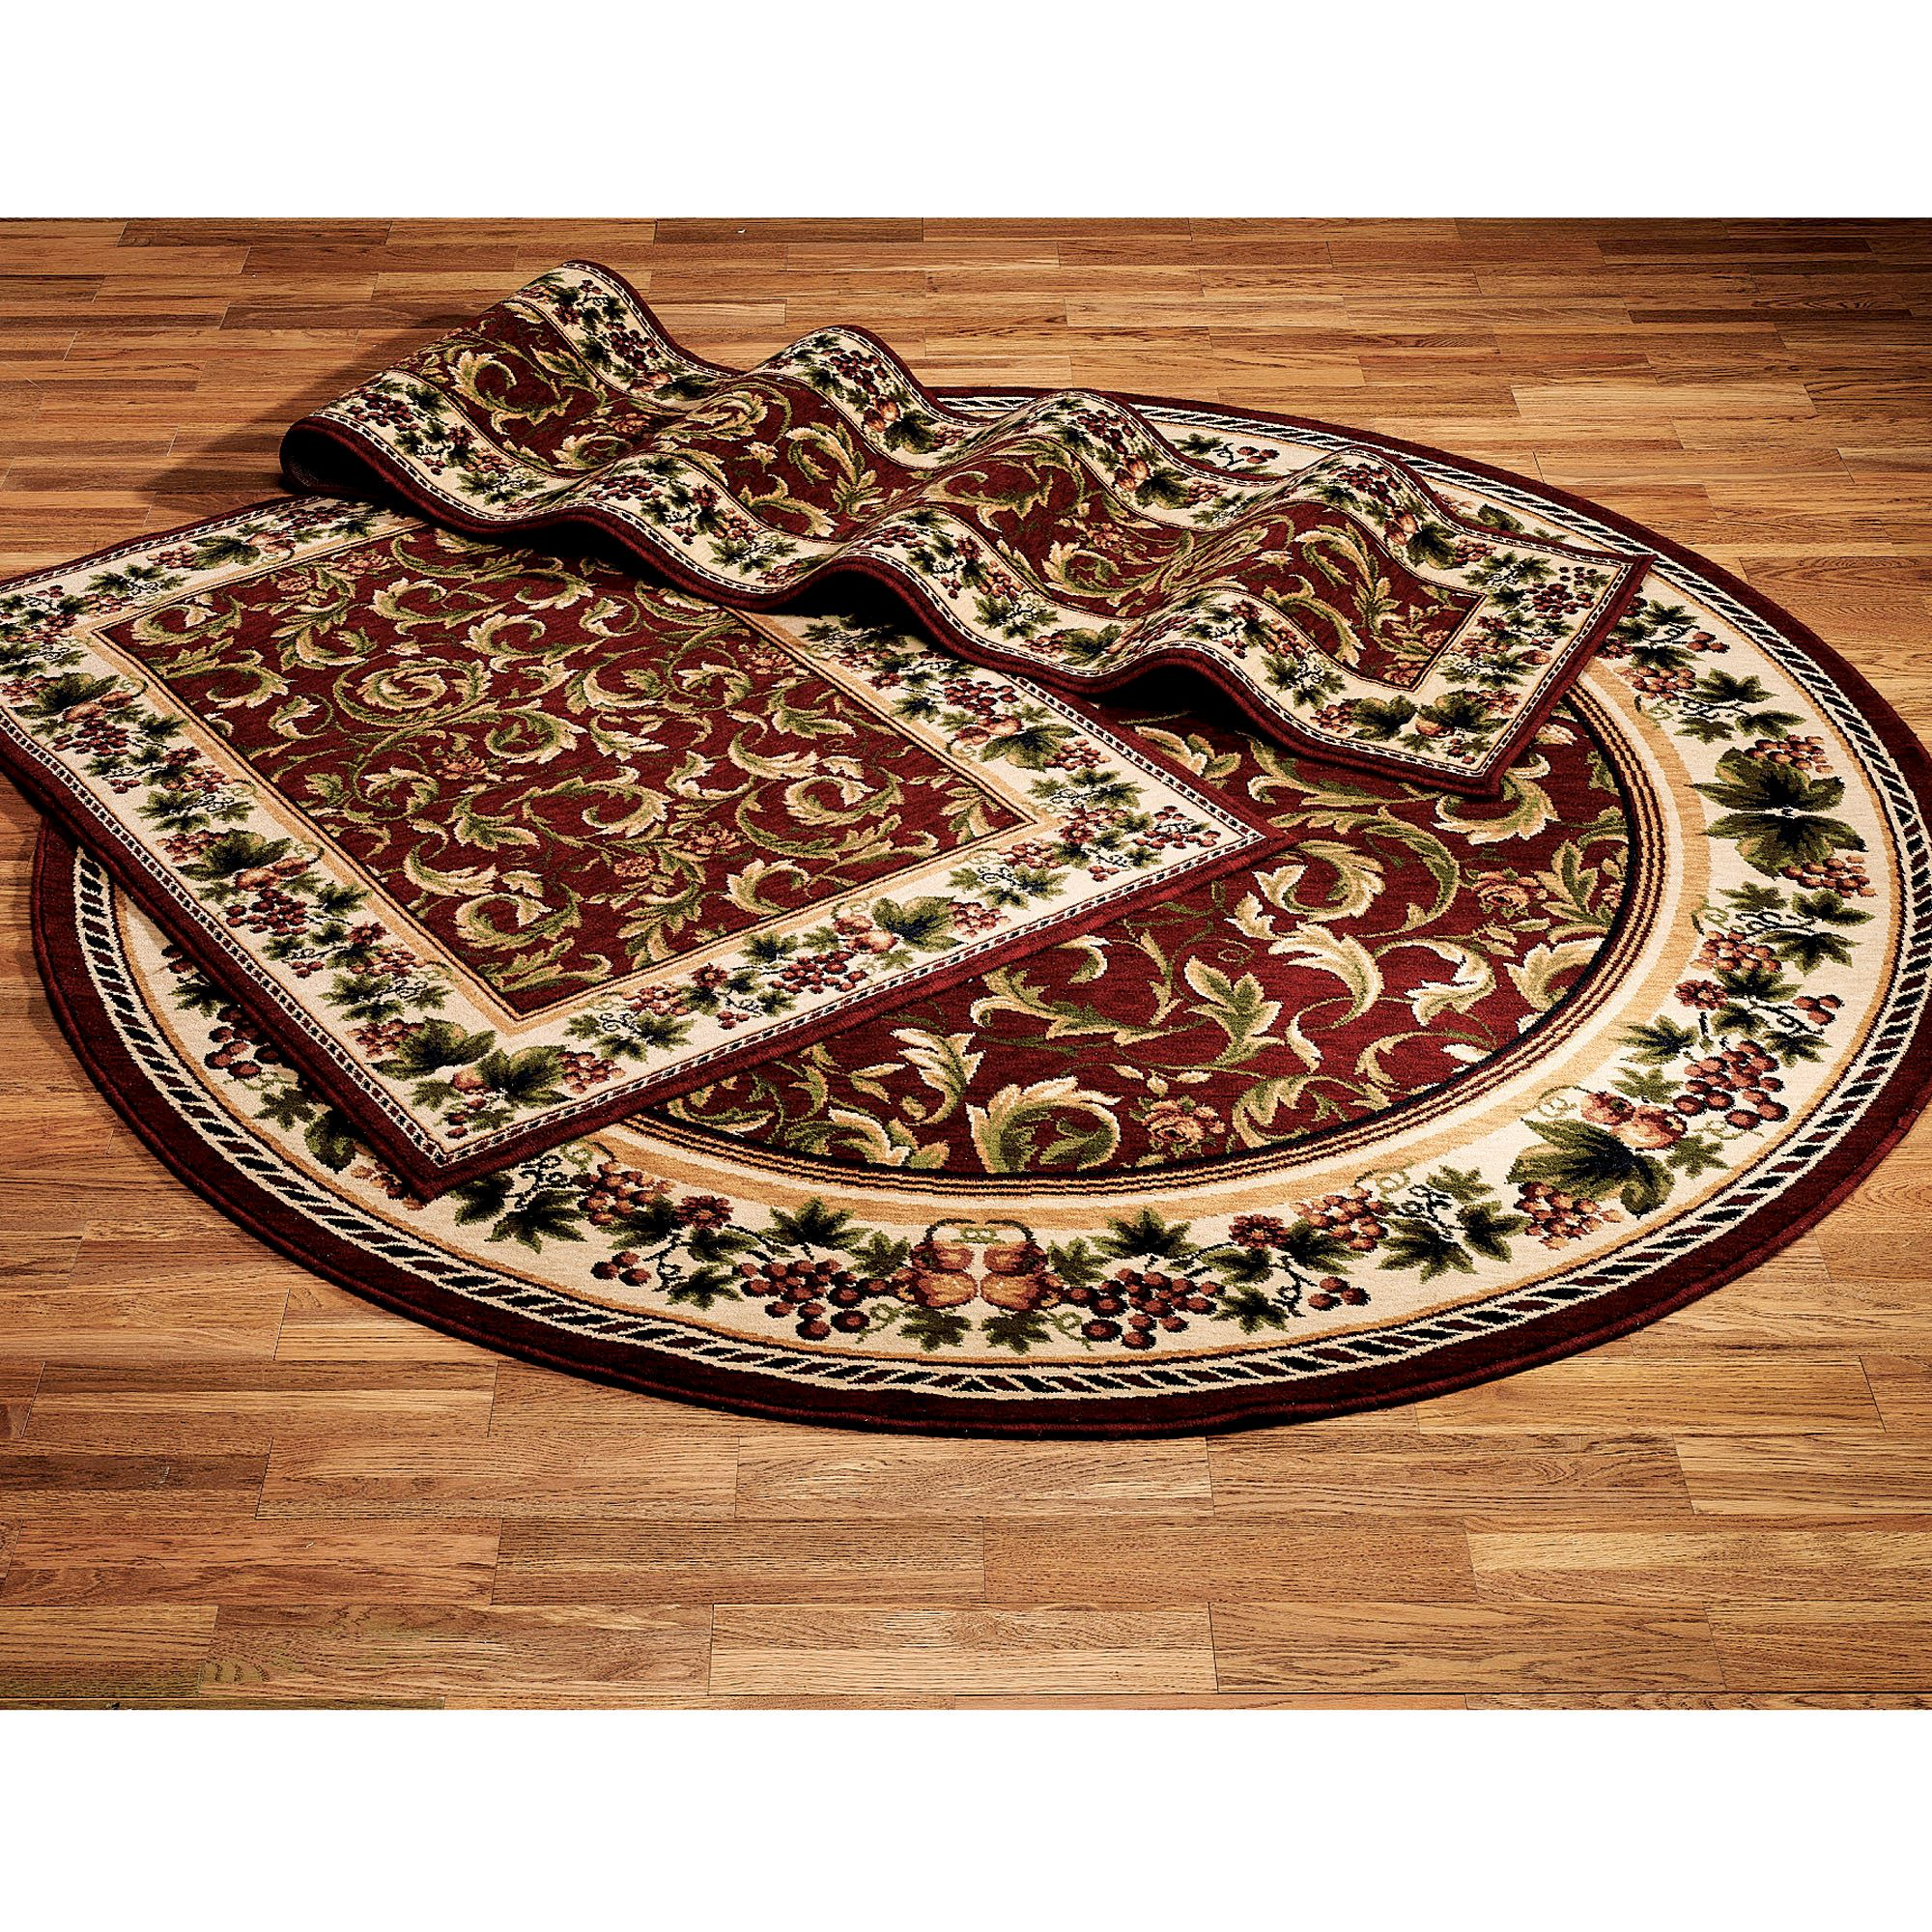 of fascinating cotton blue style material and room foot accessories red living persian color european size construction nice abstractchevron rug quality high pattern round area rugs pile polypropylene alluring multi powerlooed traditional astonishing full